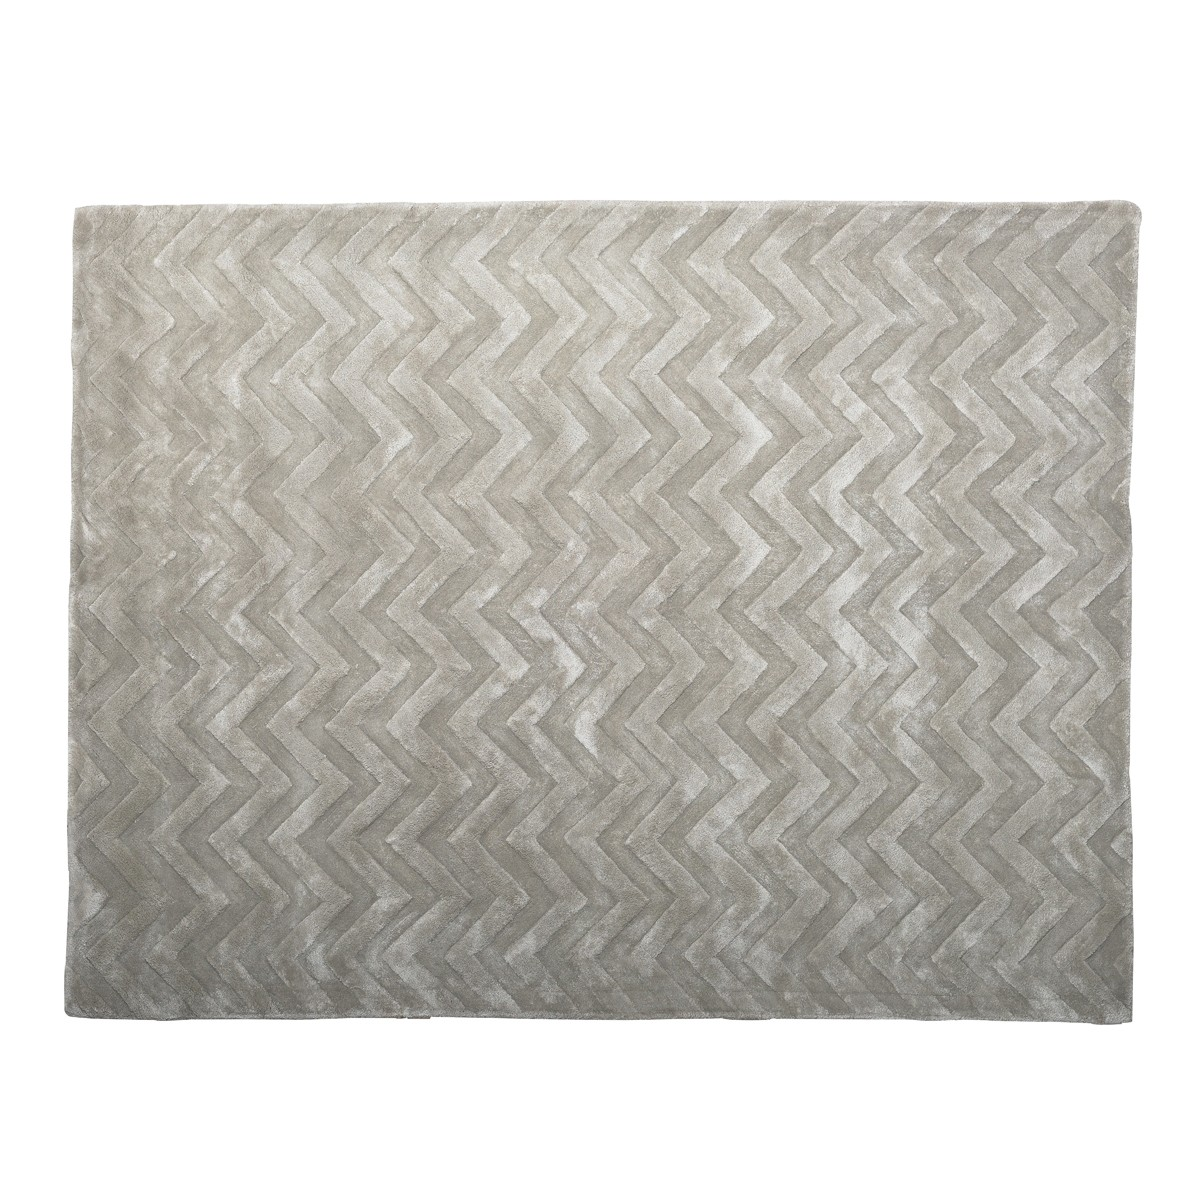 Fuji Chevron Rug In Grey Modern Rugs Uk Contemporary Home Accessories